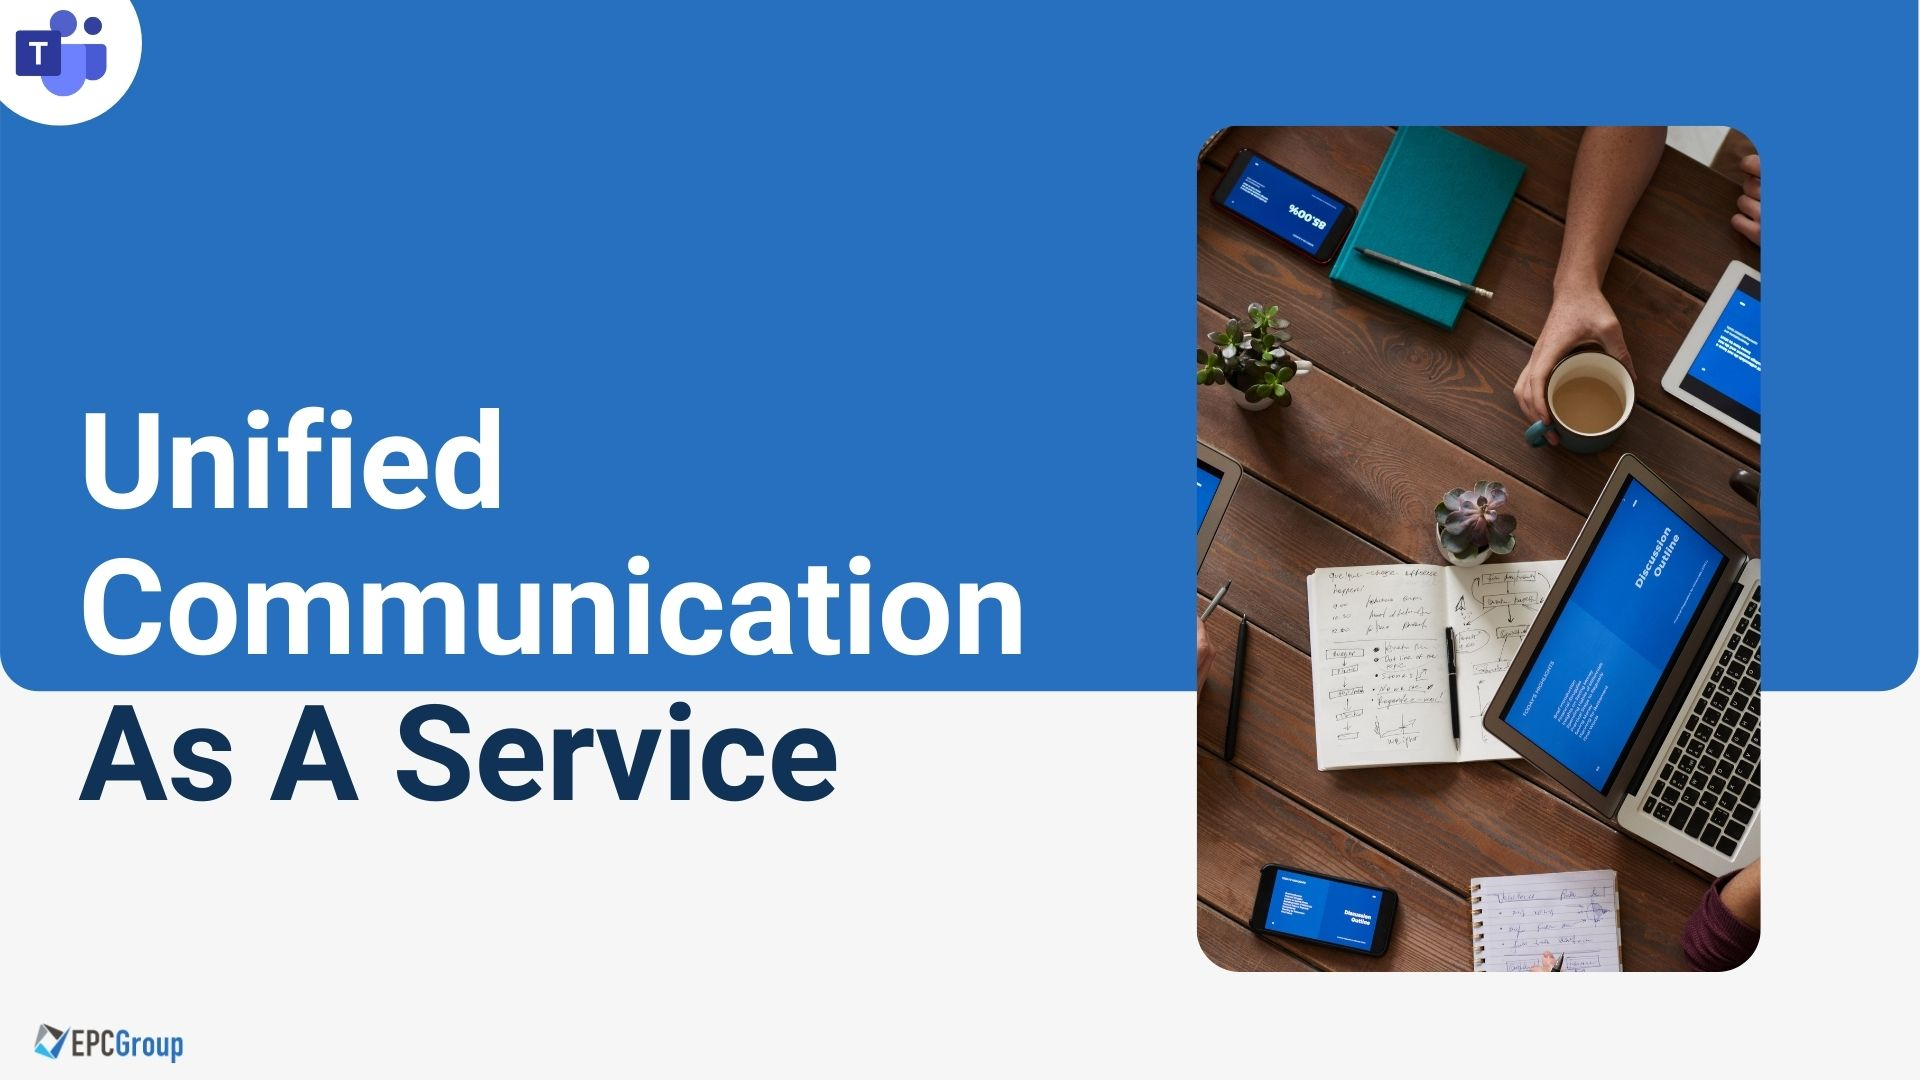 What is Unified Communication as a Service? - thumb image